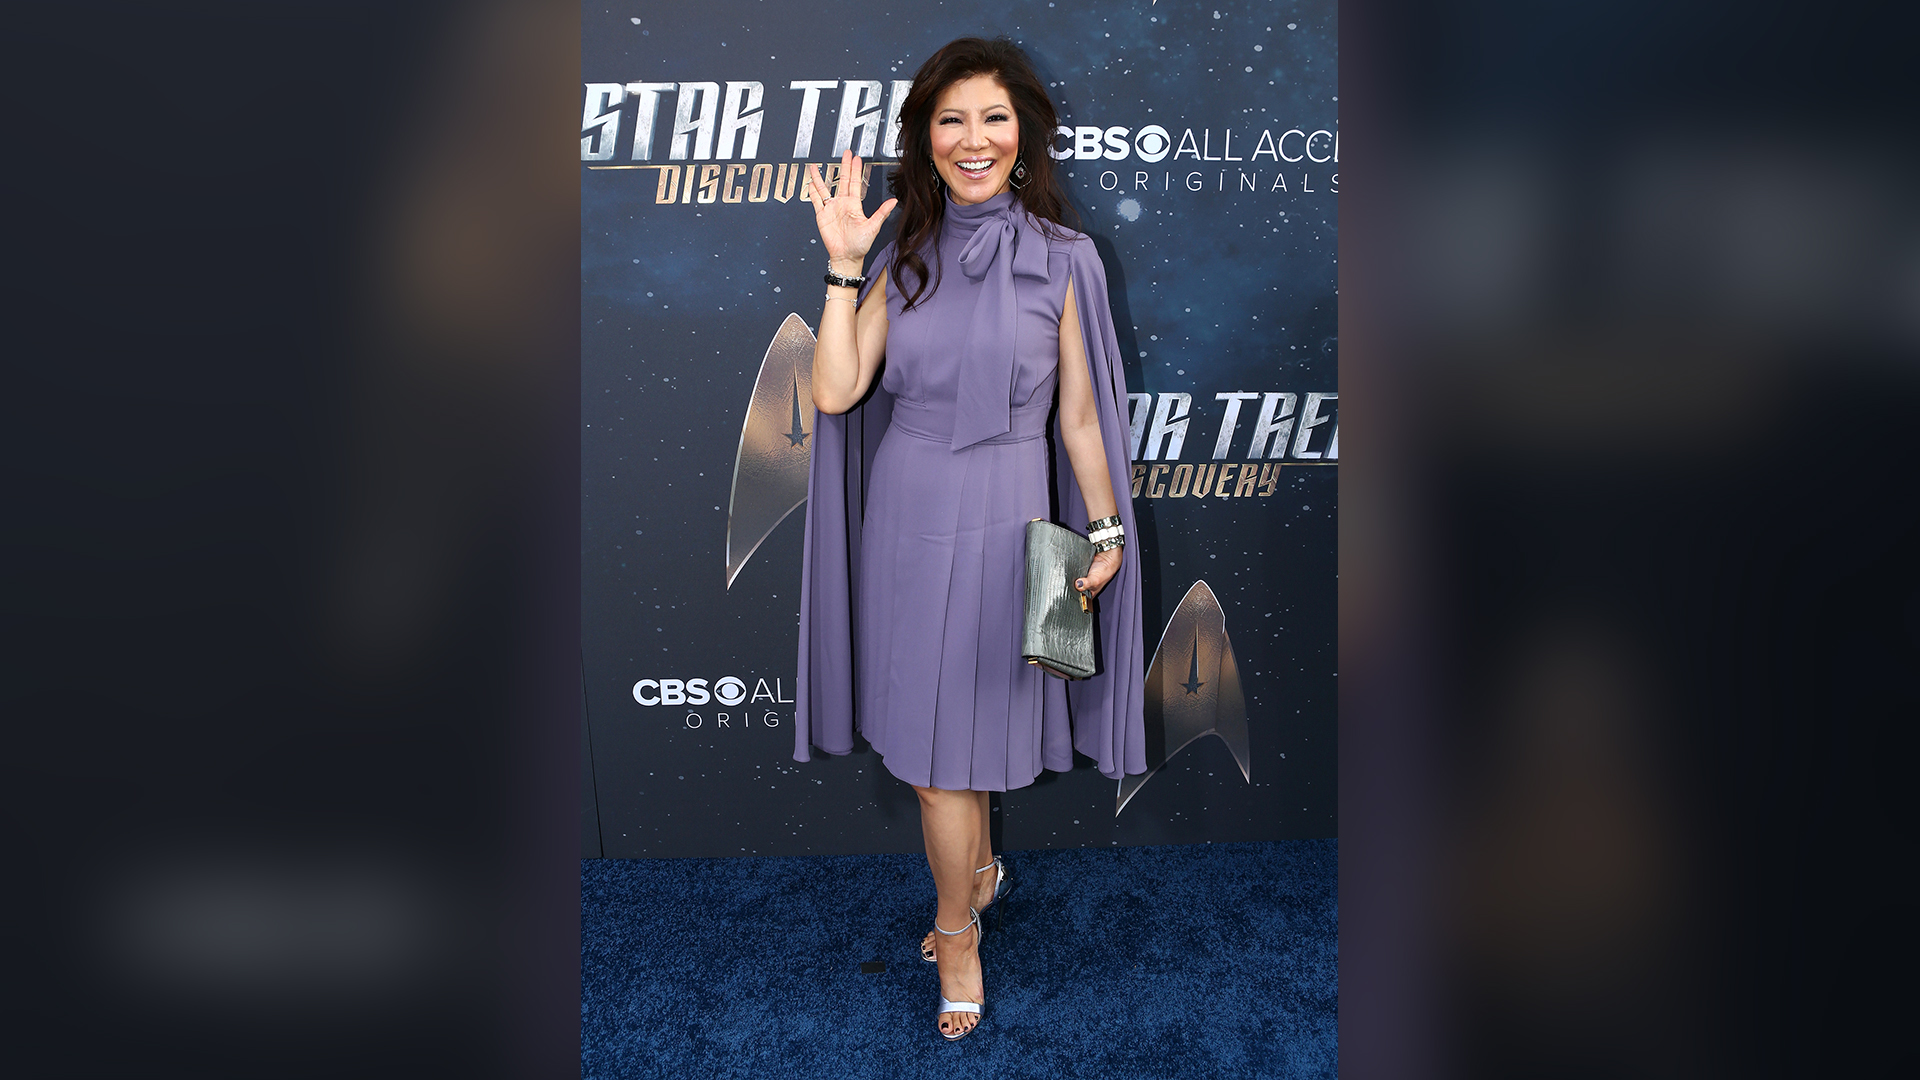 Julie Chen from Big Brother and The Talk